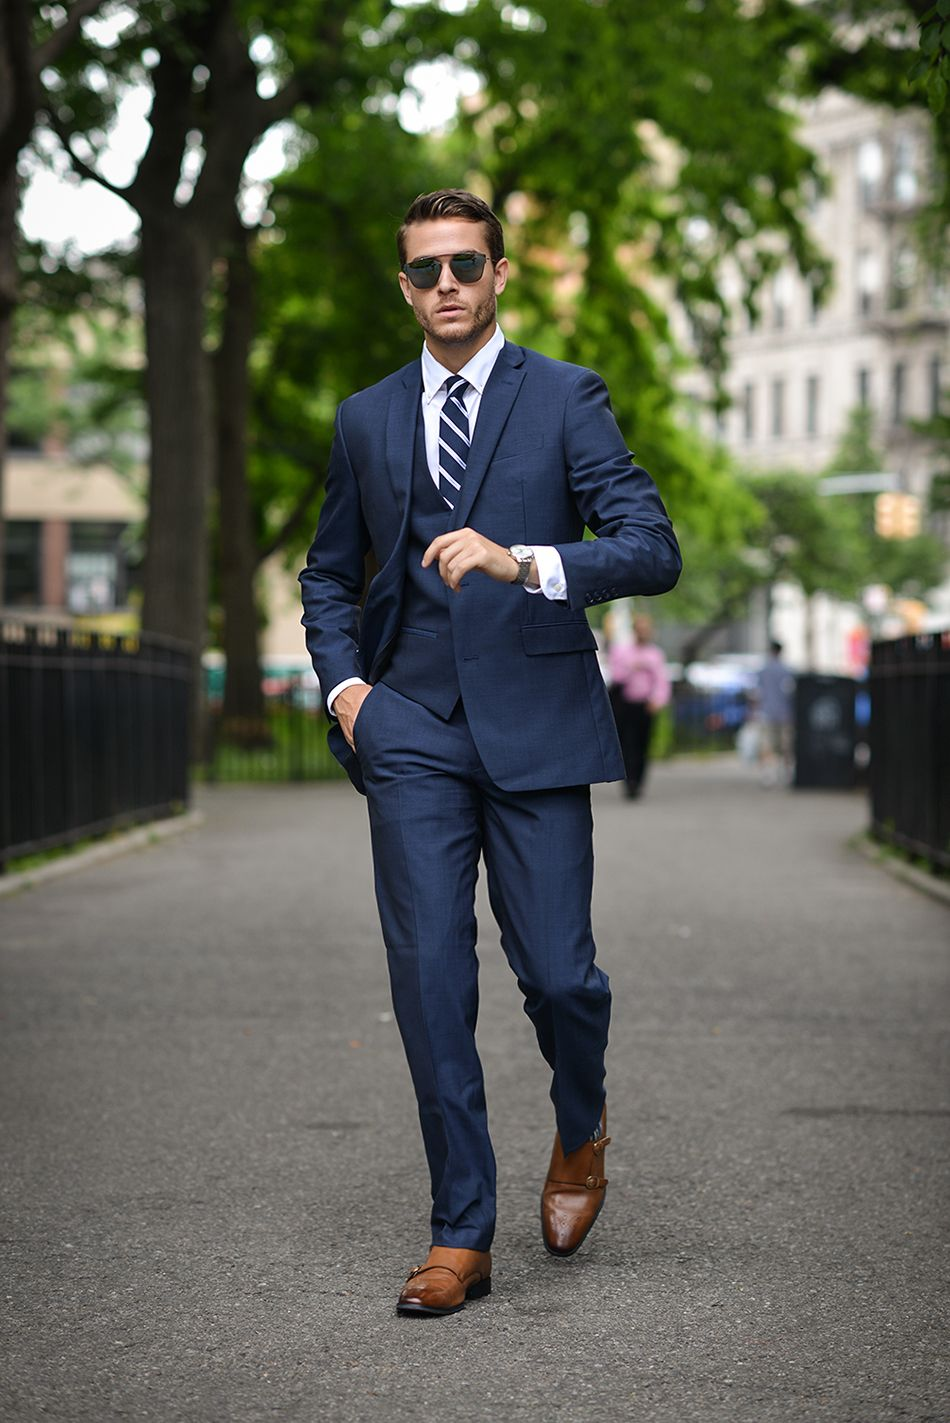 Men S Style Inspiration Blog Guide And Fashion Tips Everything A Man Needs